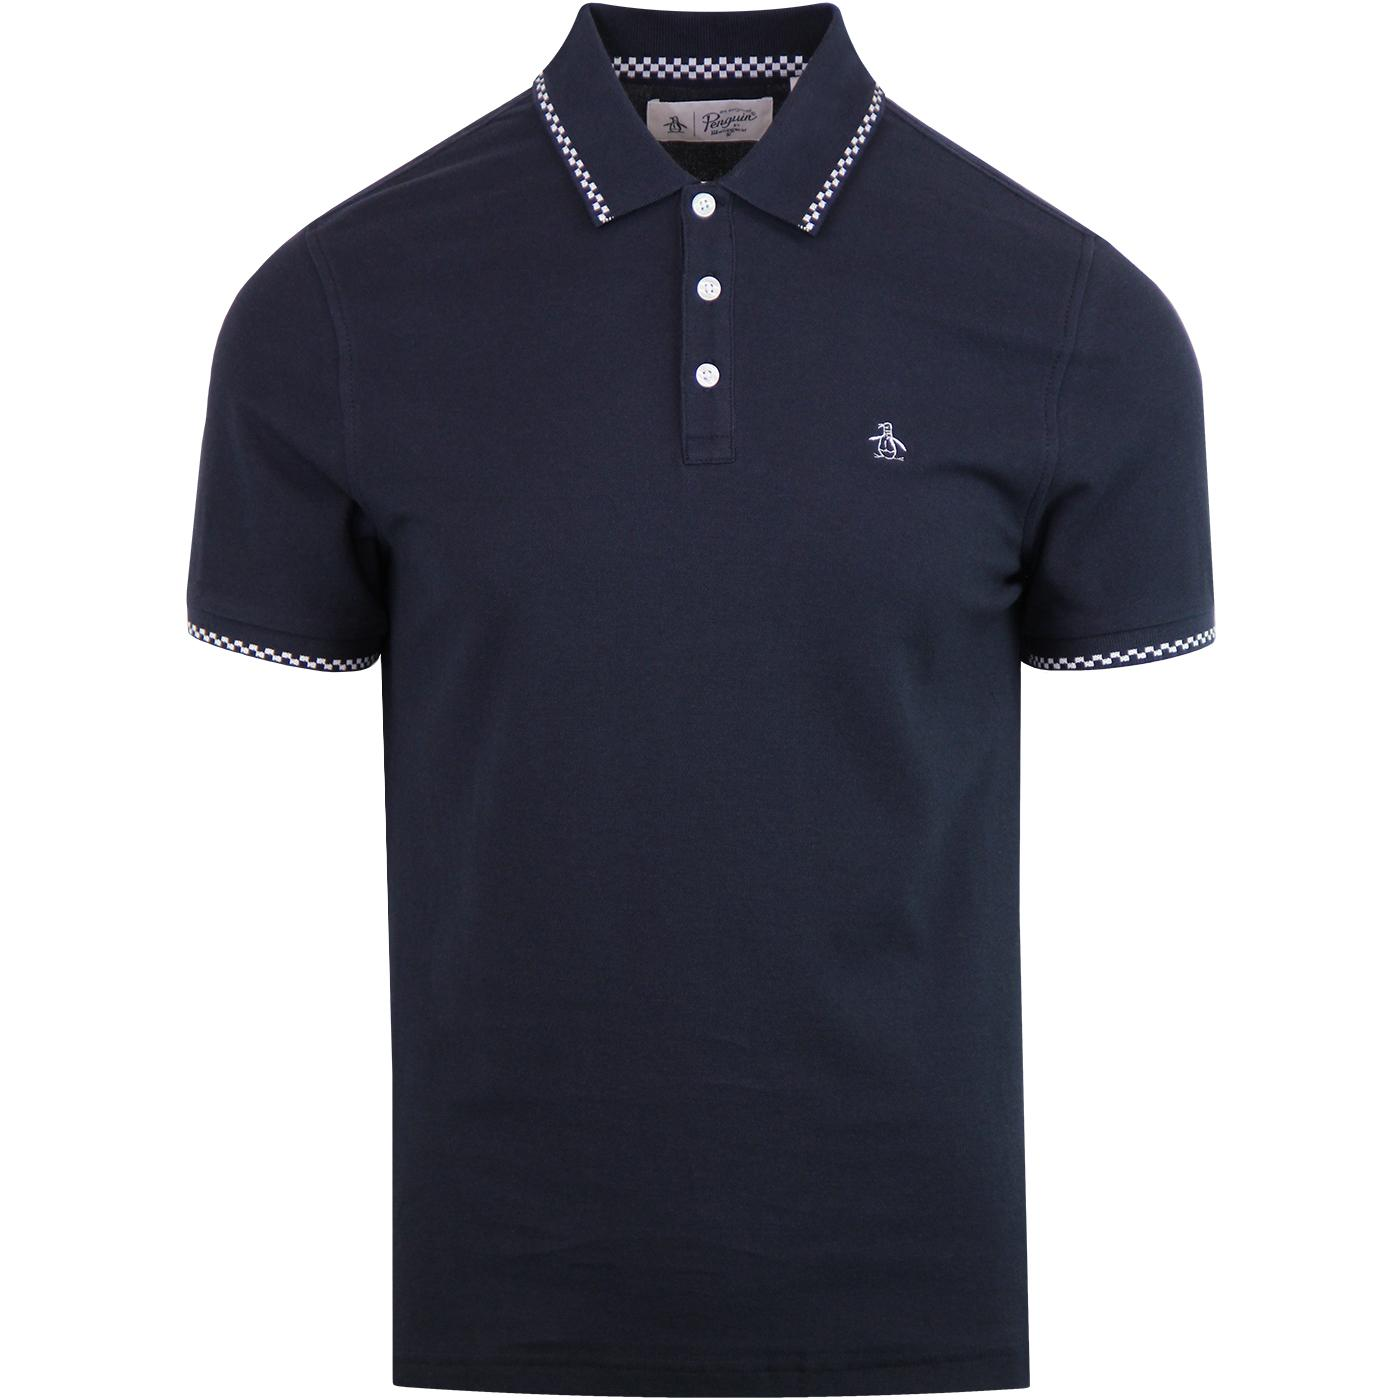 ORIGINAL PENGUIN Mod Check Tipped Pique Polo DS